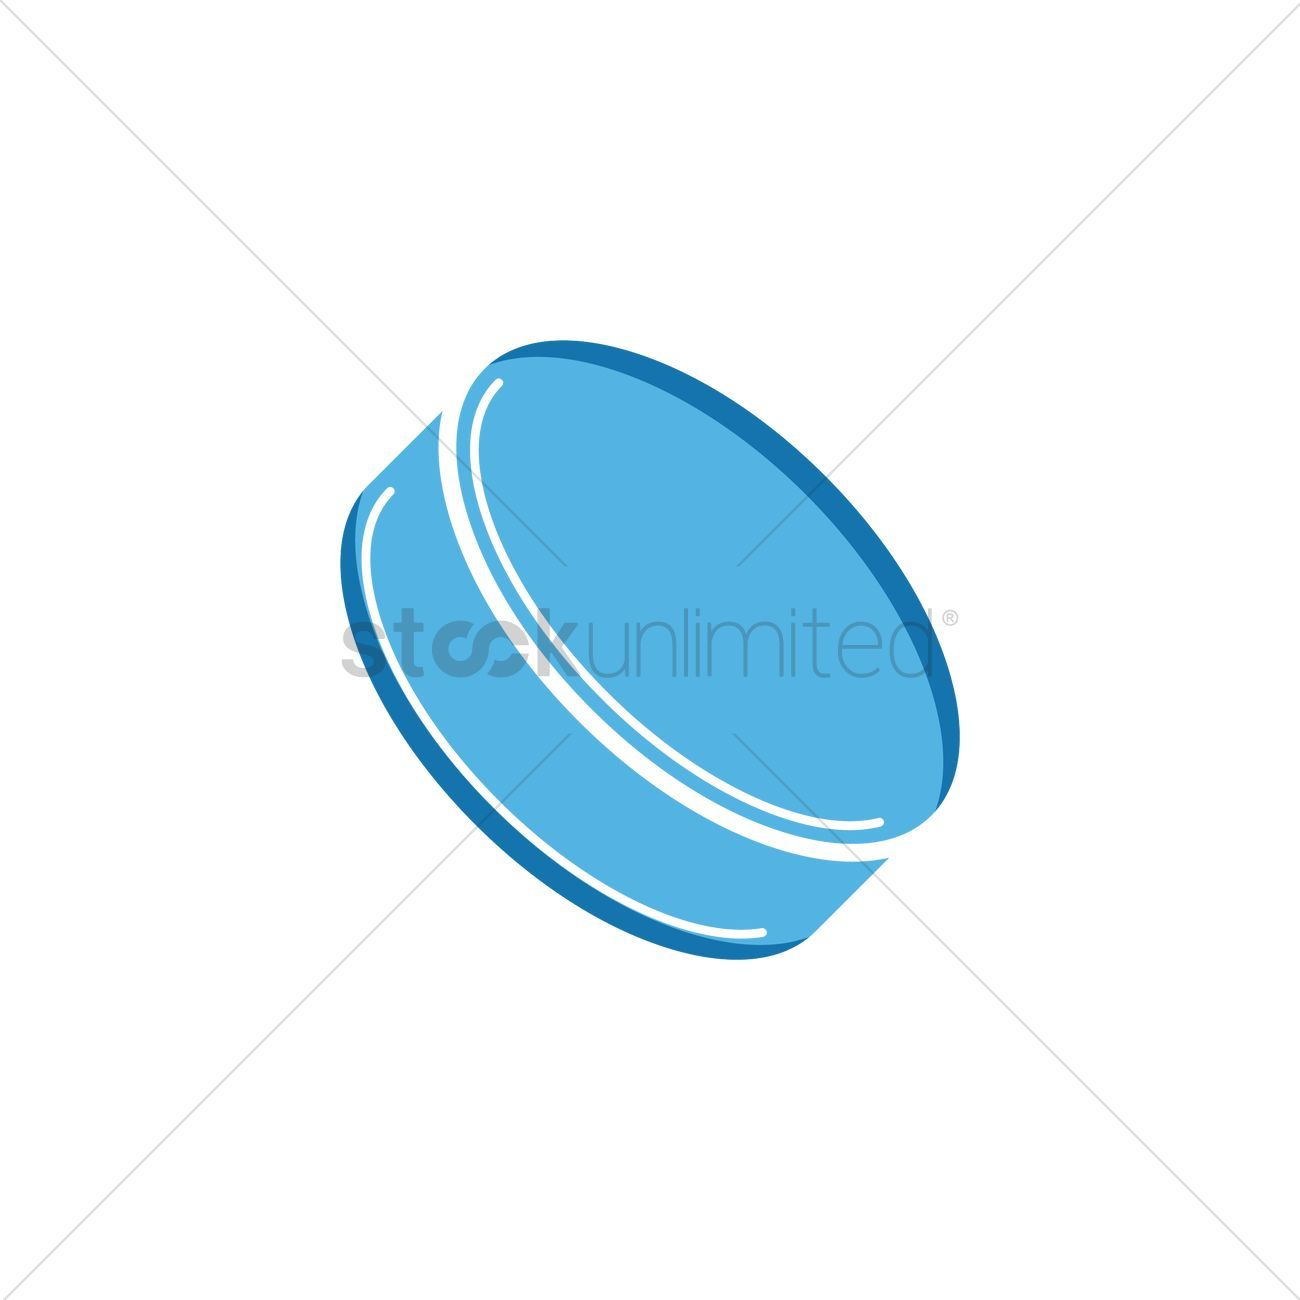 You Don T Have To Be A Designer To Get Awesome Visuals In 2020 Clip Art Holiday Vectors Ice Hockey Puck